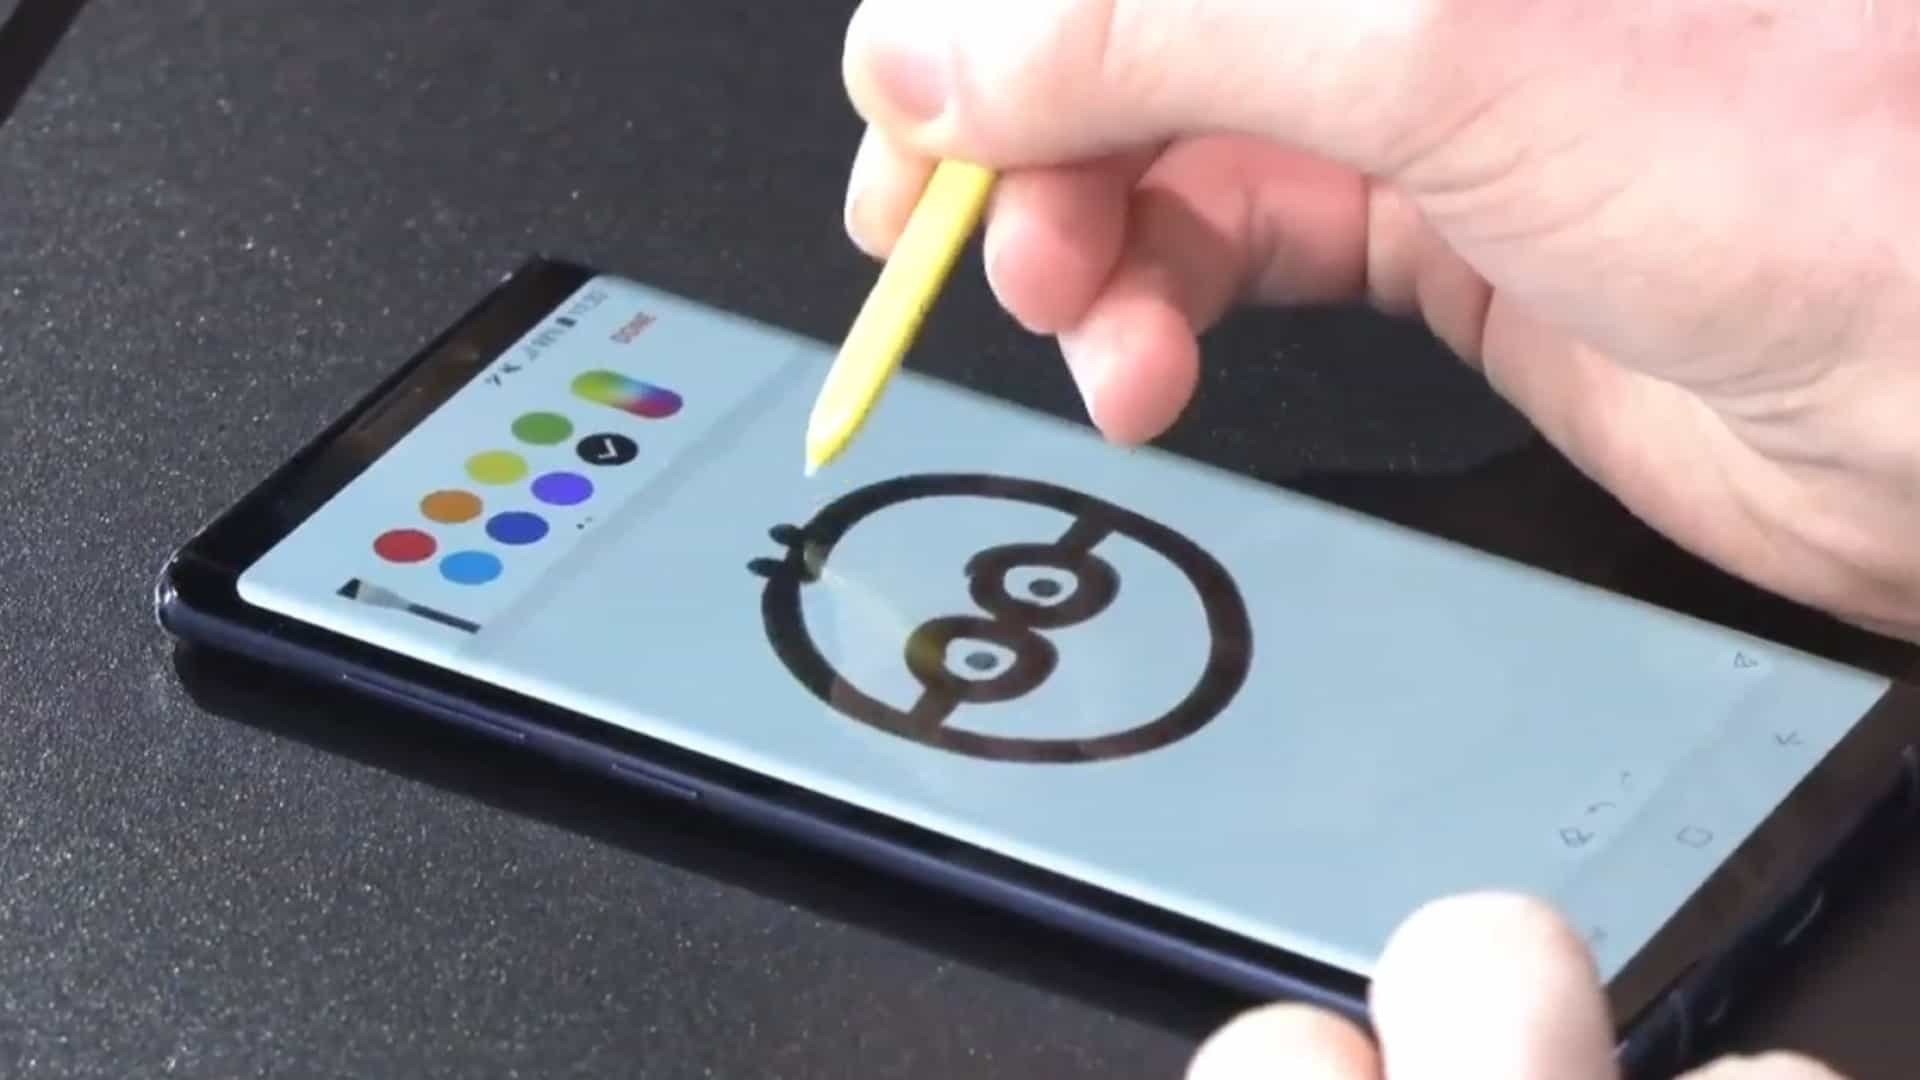 O modelo mais caro do Galaxy Note 9 é também o mais procurado